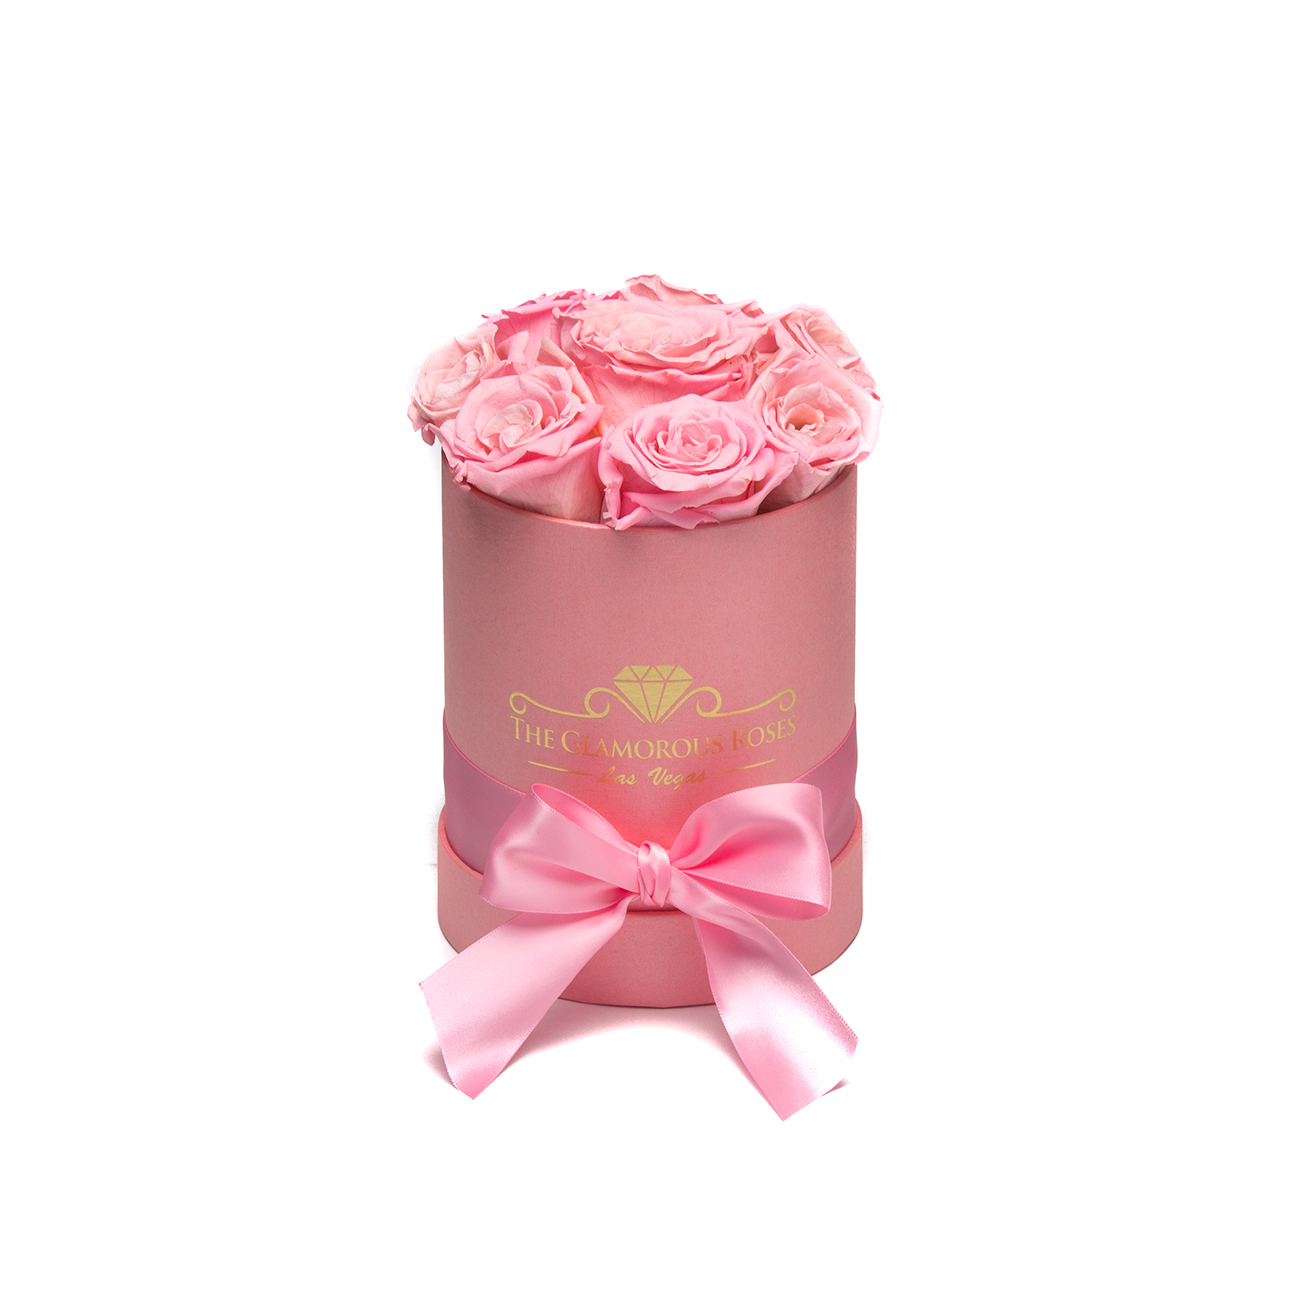 Small Pink Round Box - Light Pink Roses - The Glamorous Roses